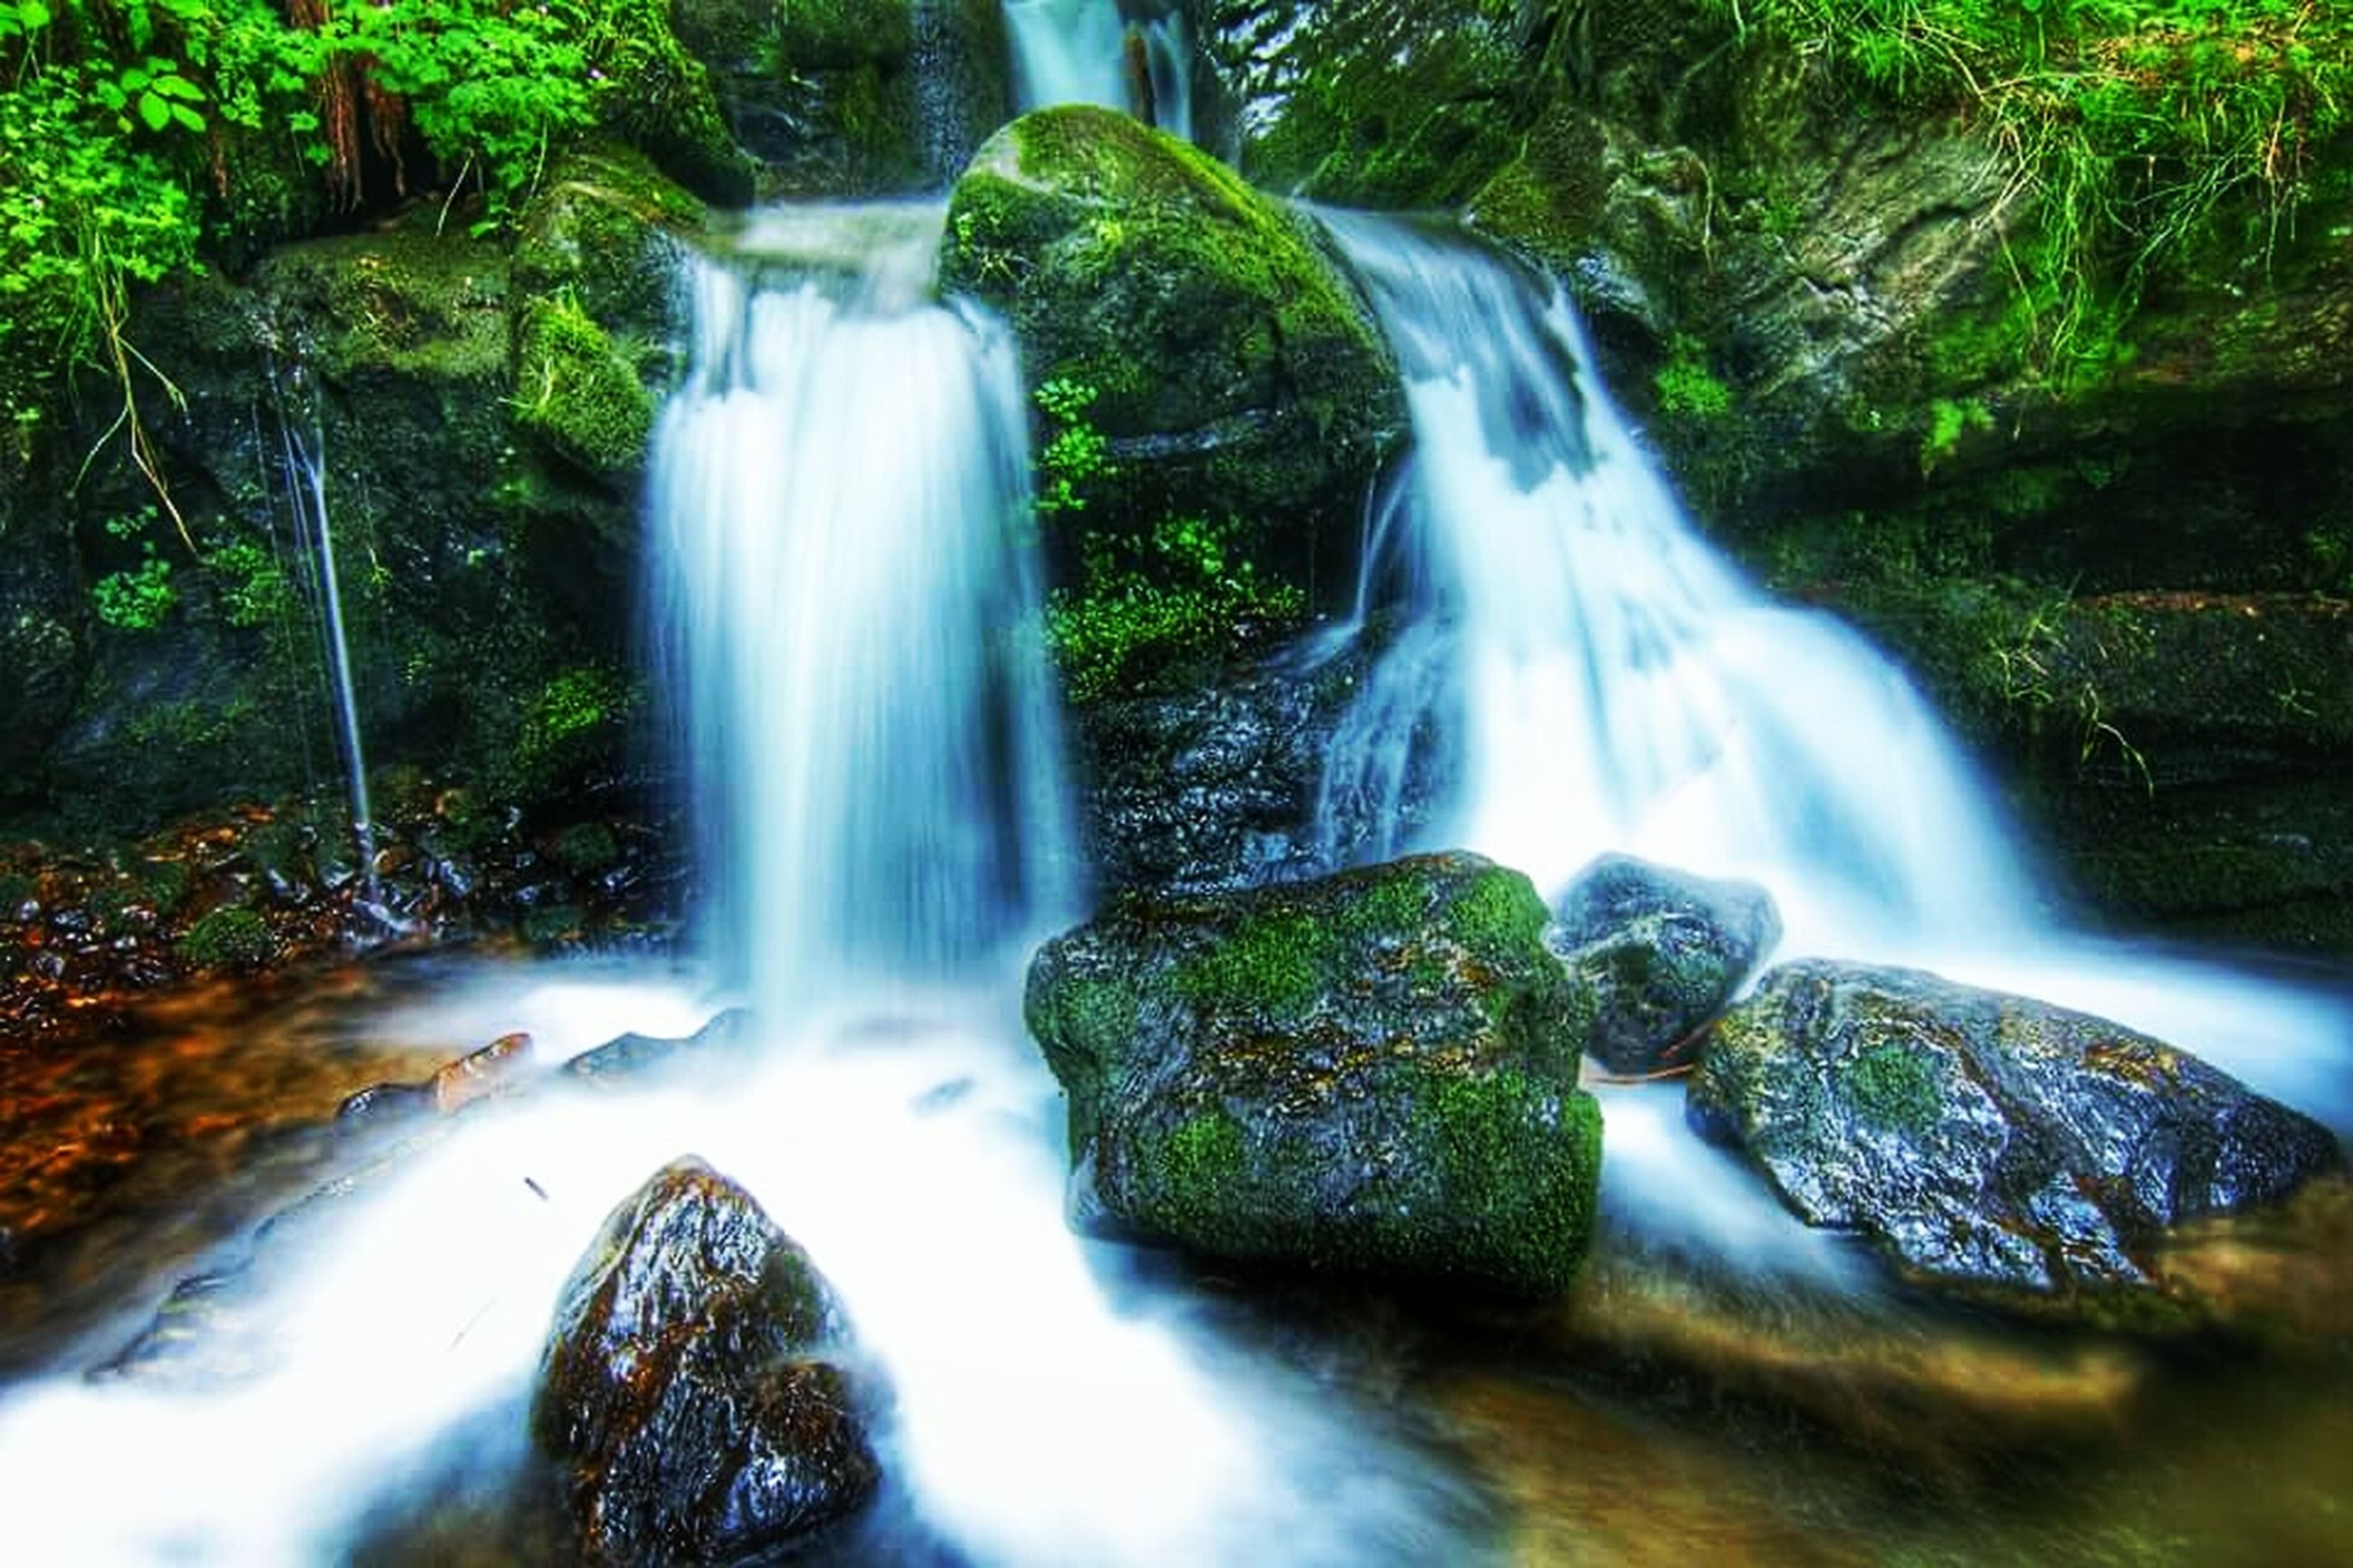 waterfall, motion, flowing water, long exposure, water, blurred motion, nature, beauty in nature, scenics, forest, no people, river, tranquil scene, rapid, moss, outdoors, day, freshness